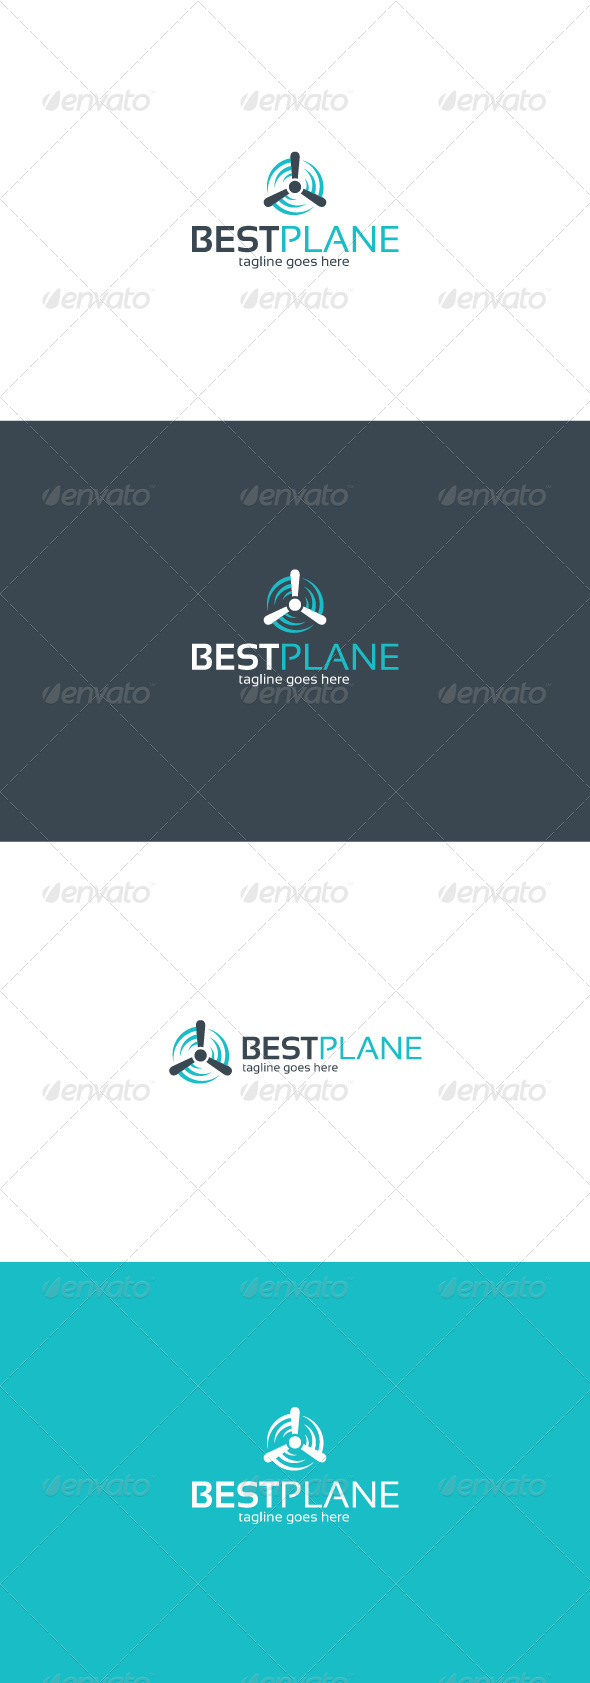 GraphicRiver Best Plane Logo 8256986